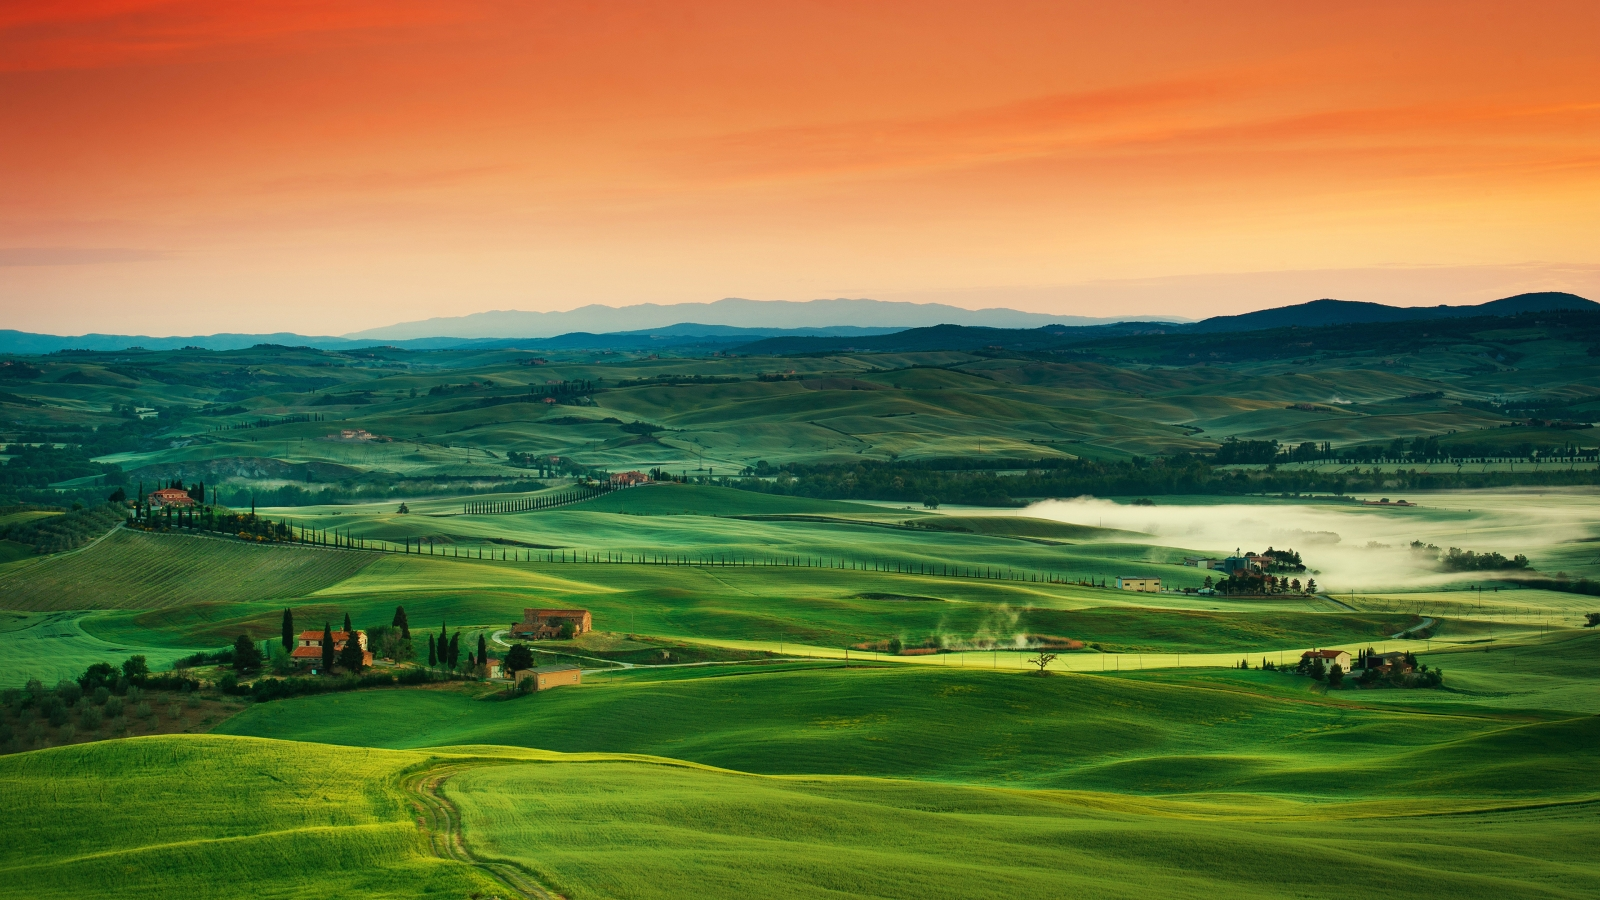 Tuscany Italy for 1600 x 900 HDTV resolution